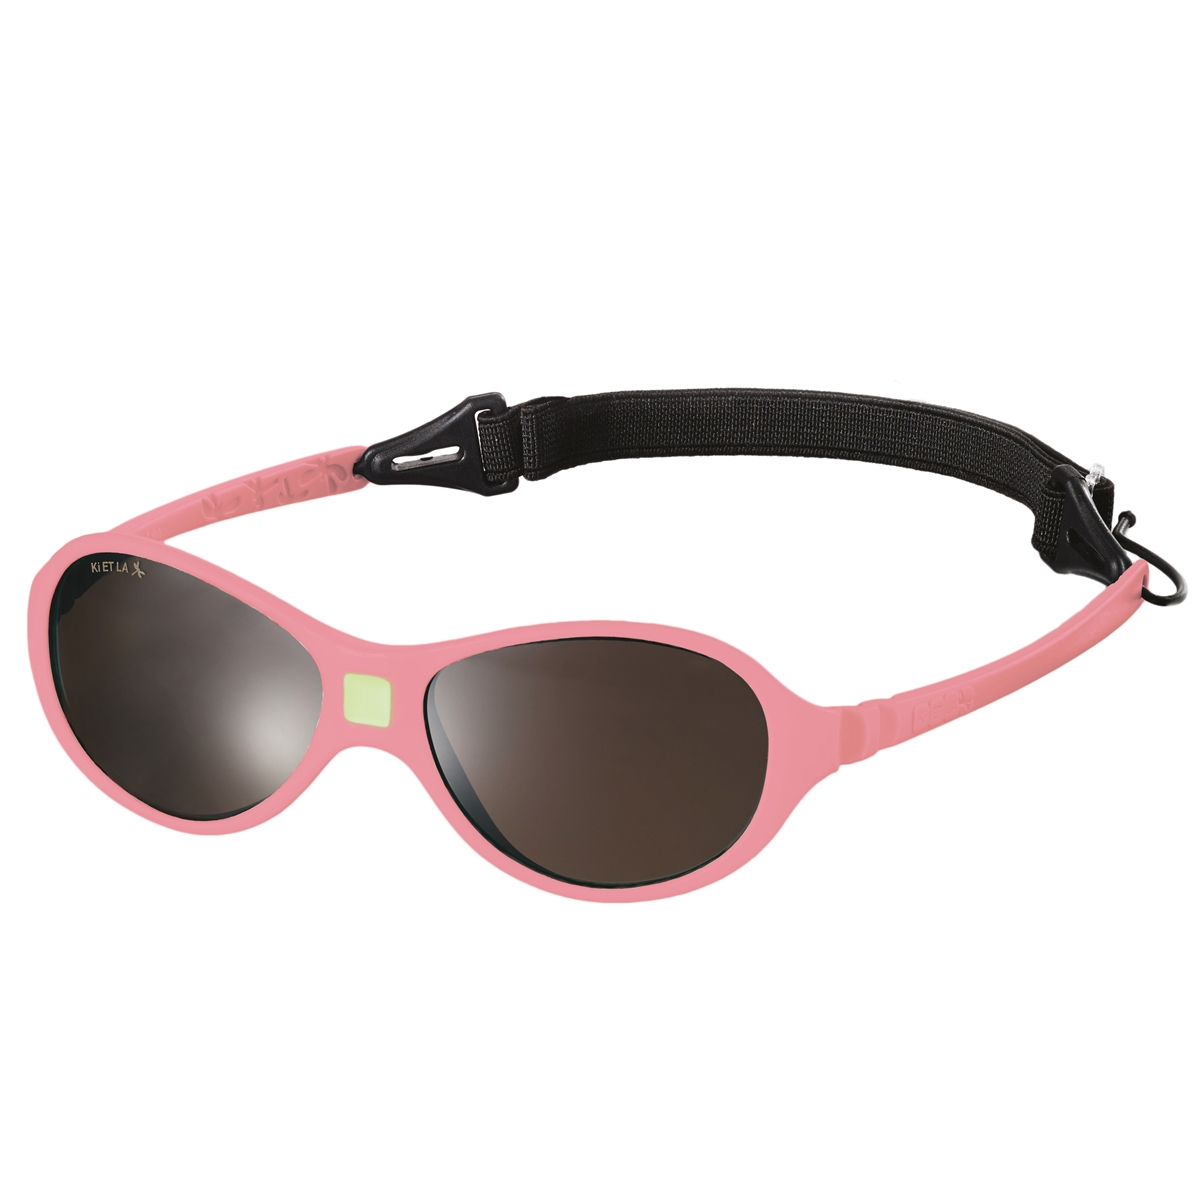 Mycey As A Child 12-30 Months Pink Sunglasses Unbreakable Mass